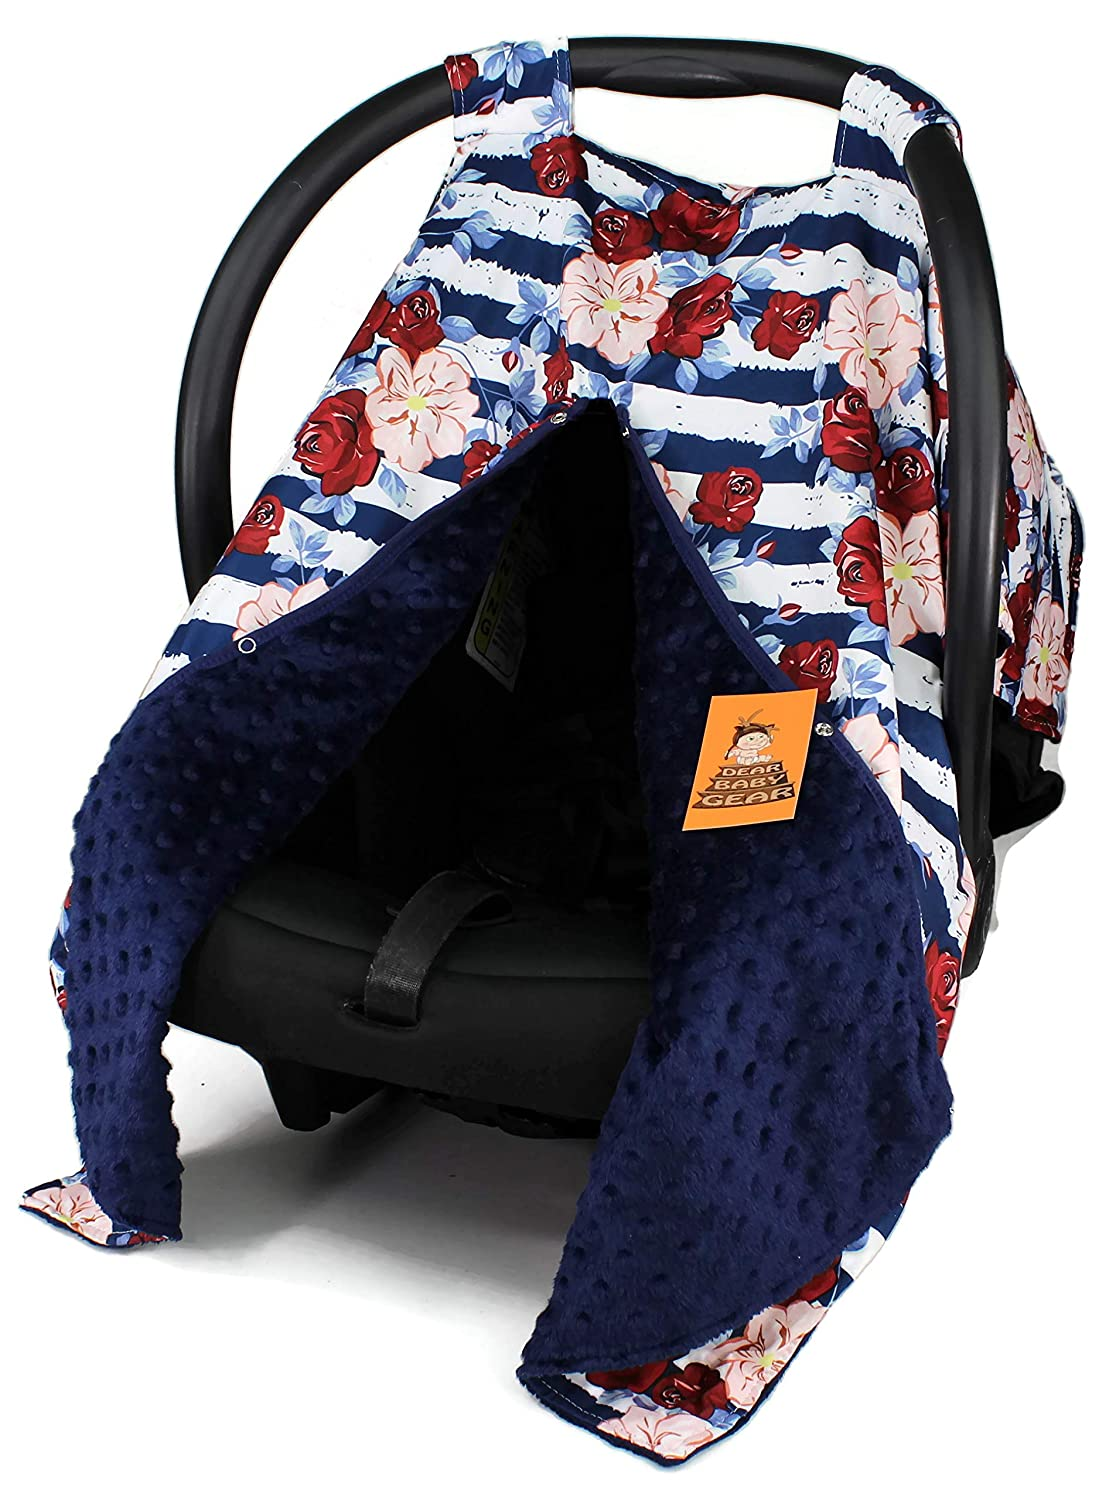 Dear Baby Gear Baby Car Seat Canopy Cover, Red Roses, Blush Hibiscus and Navy White Stripes, Navy Minky